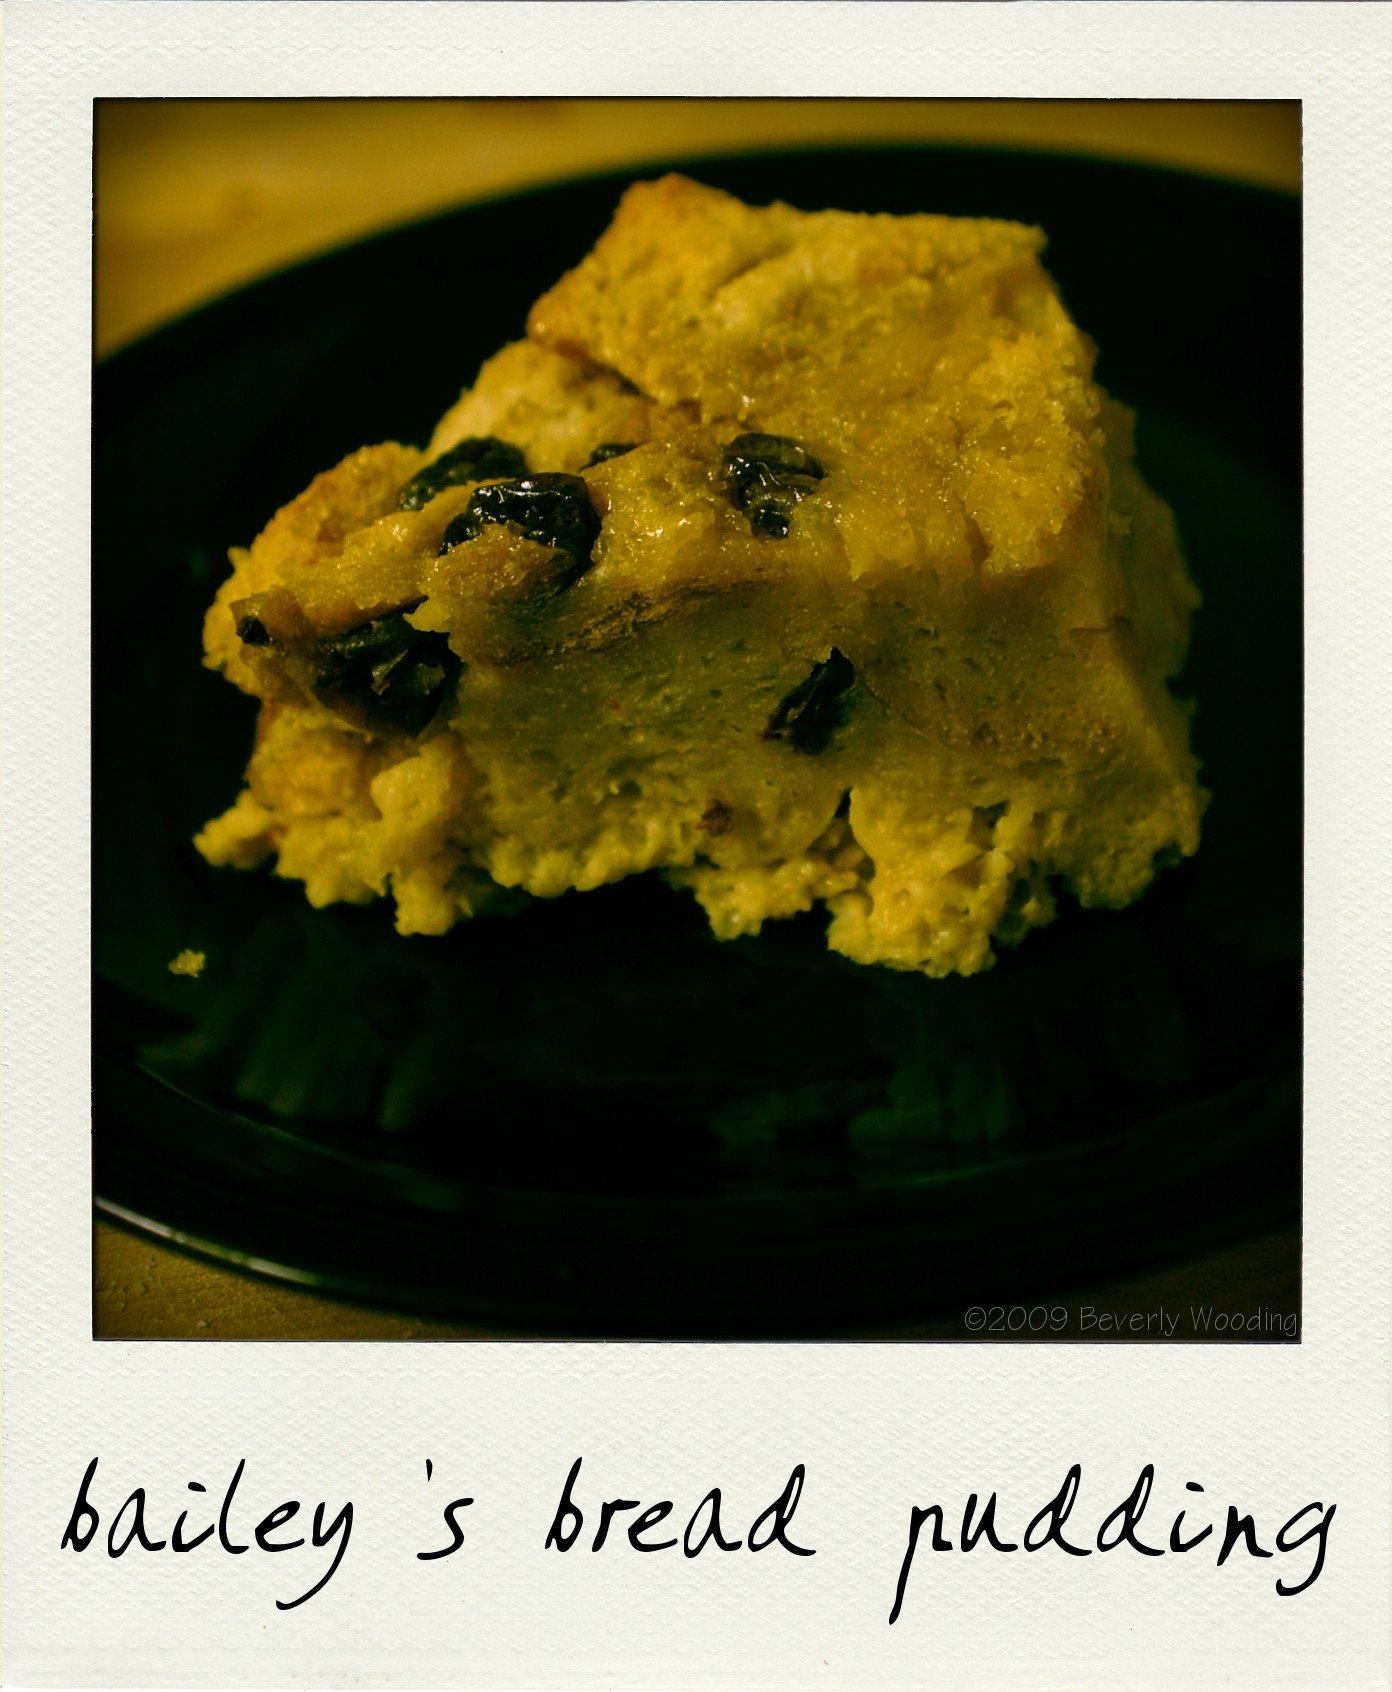 Bailey's bread pudding